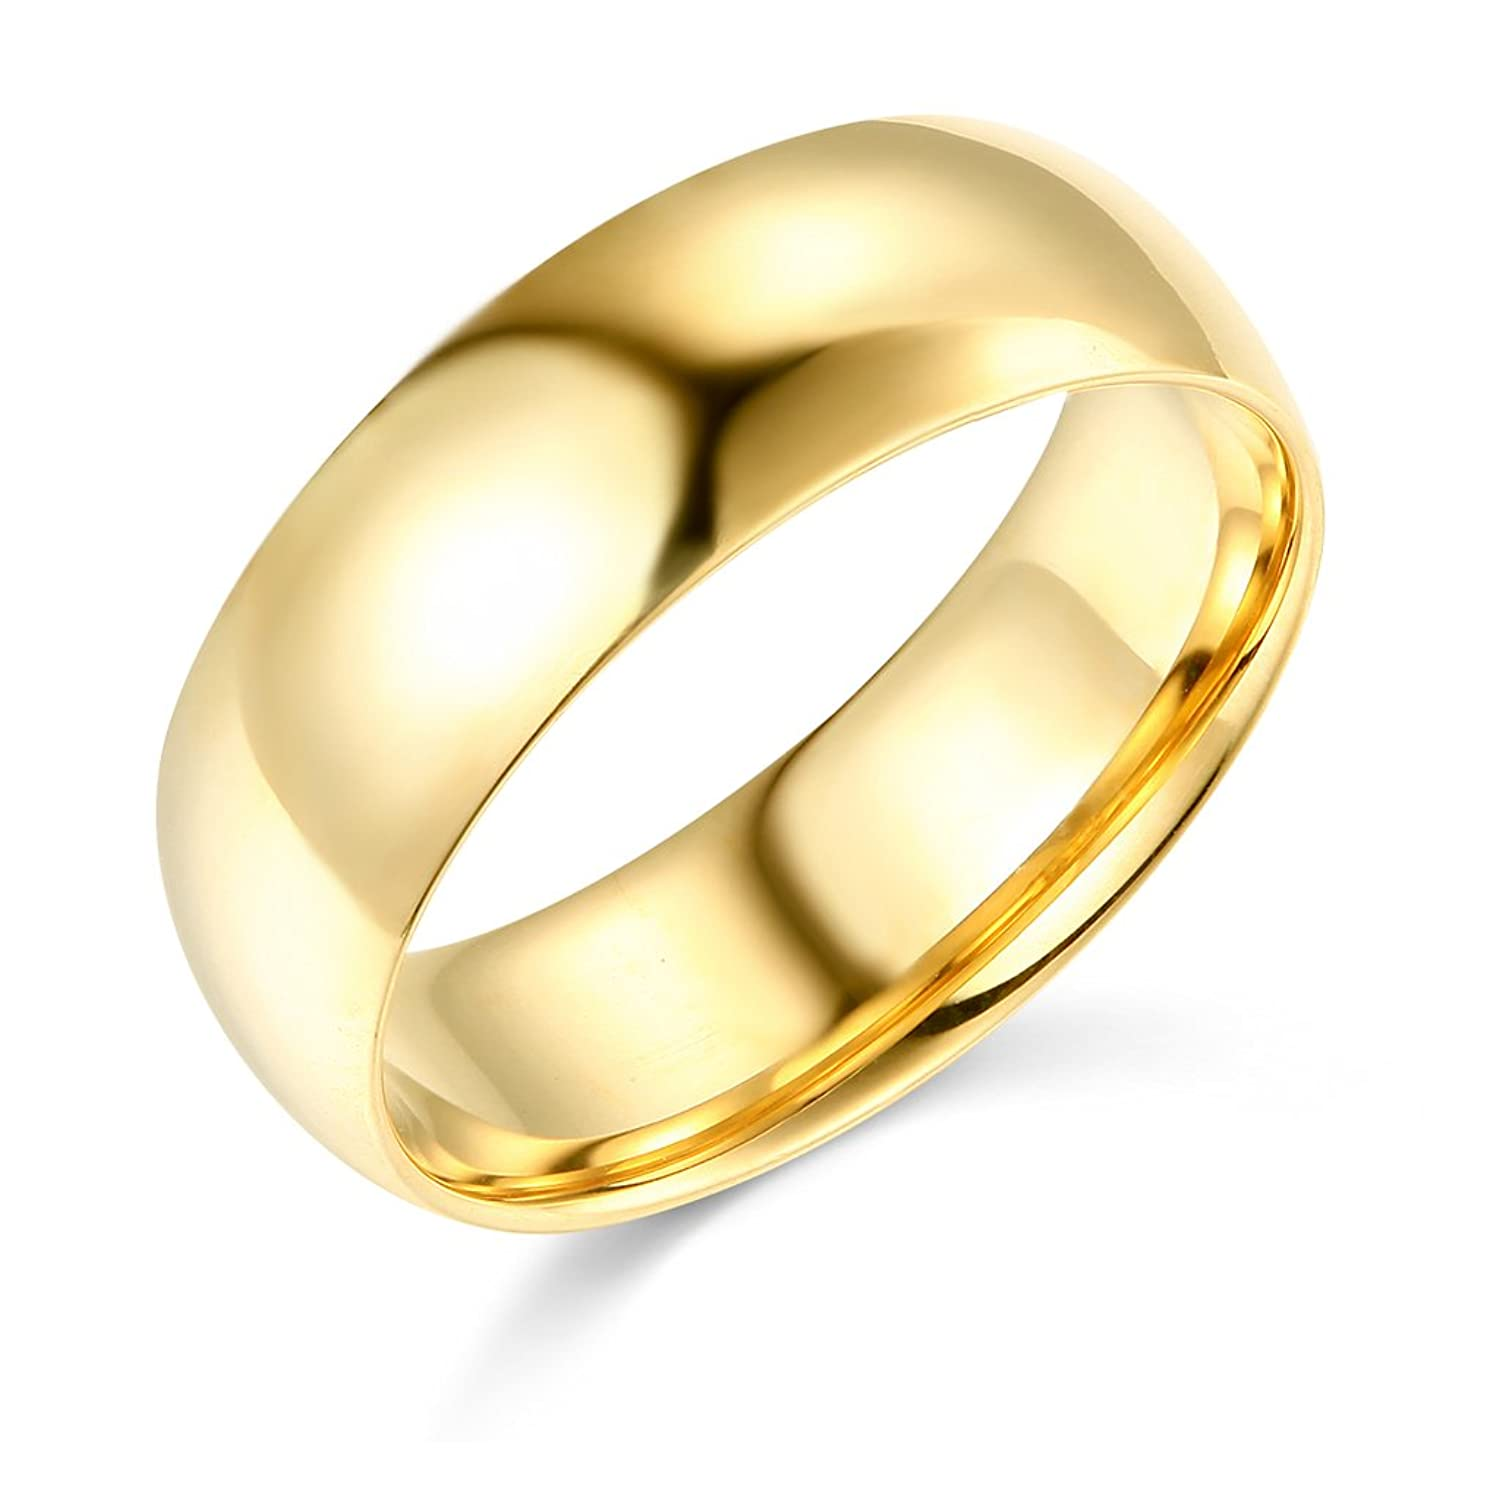 14k Yellow OR White Gold 7mm SOLID COMFORT FIT Plain Wedding Band